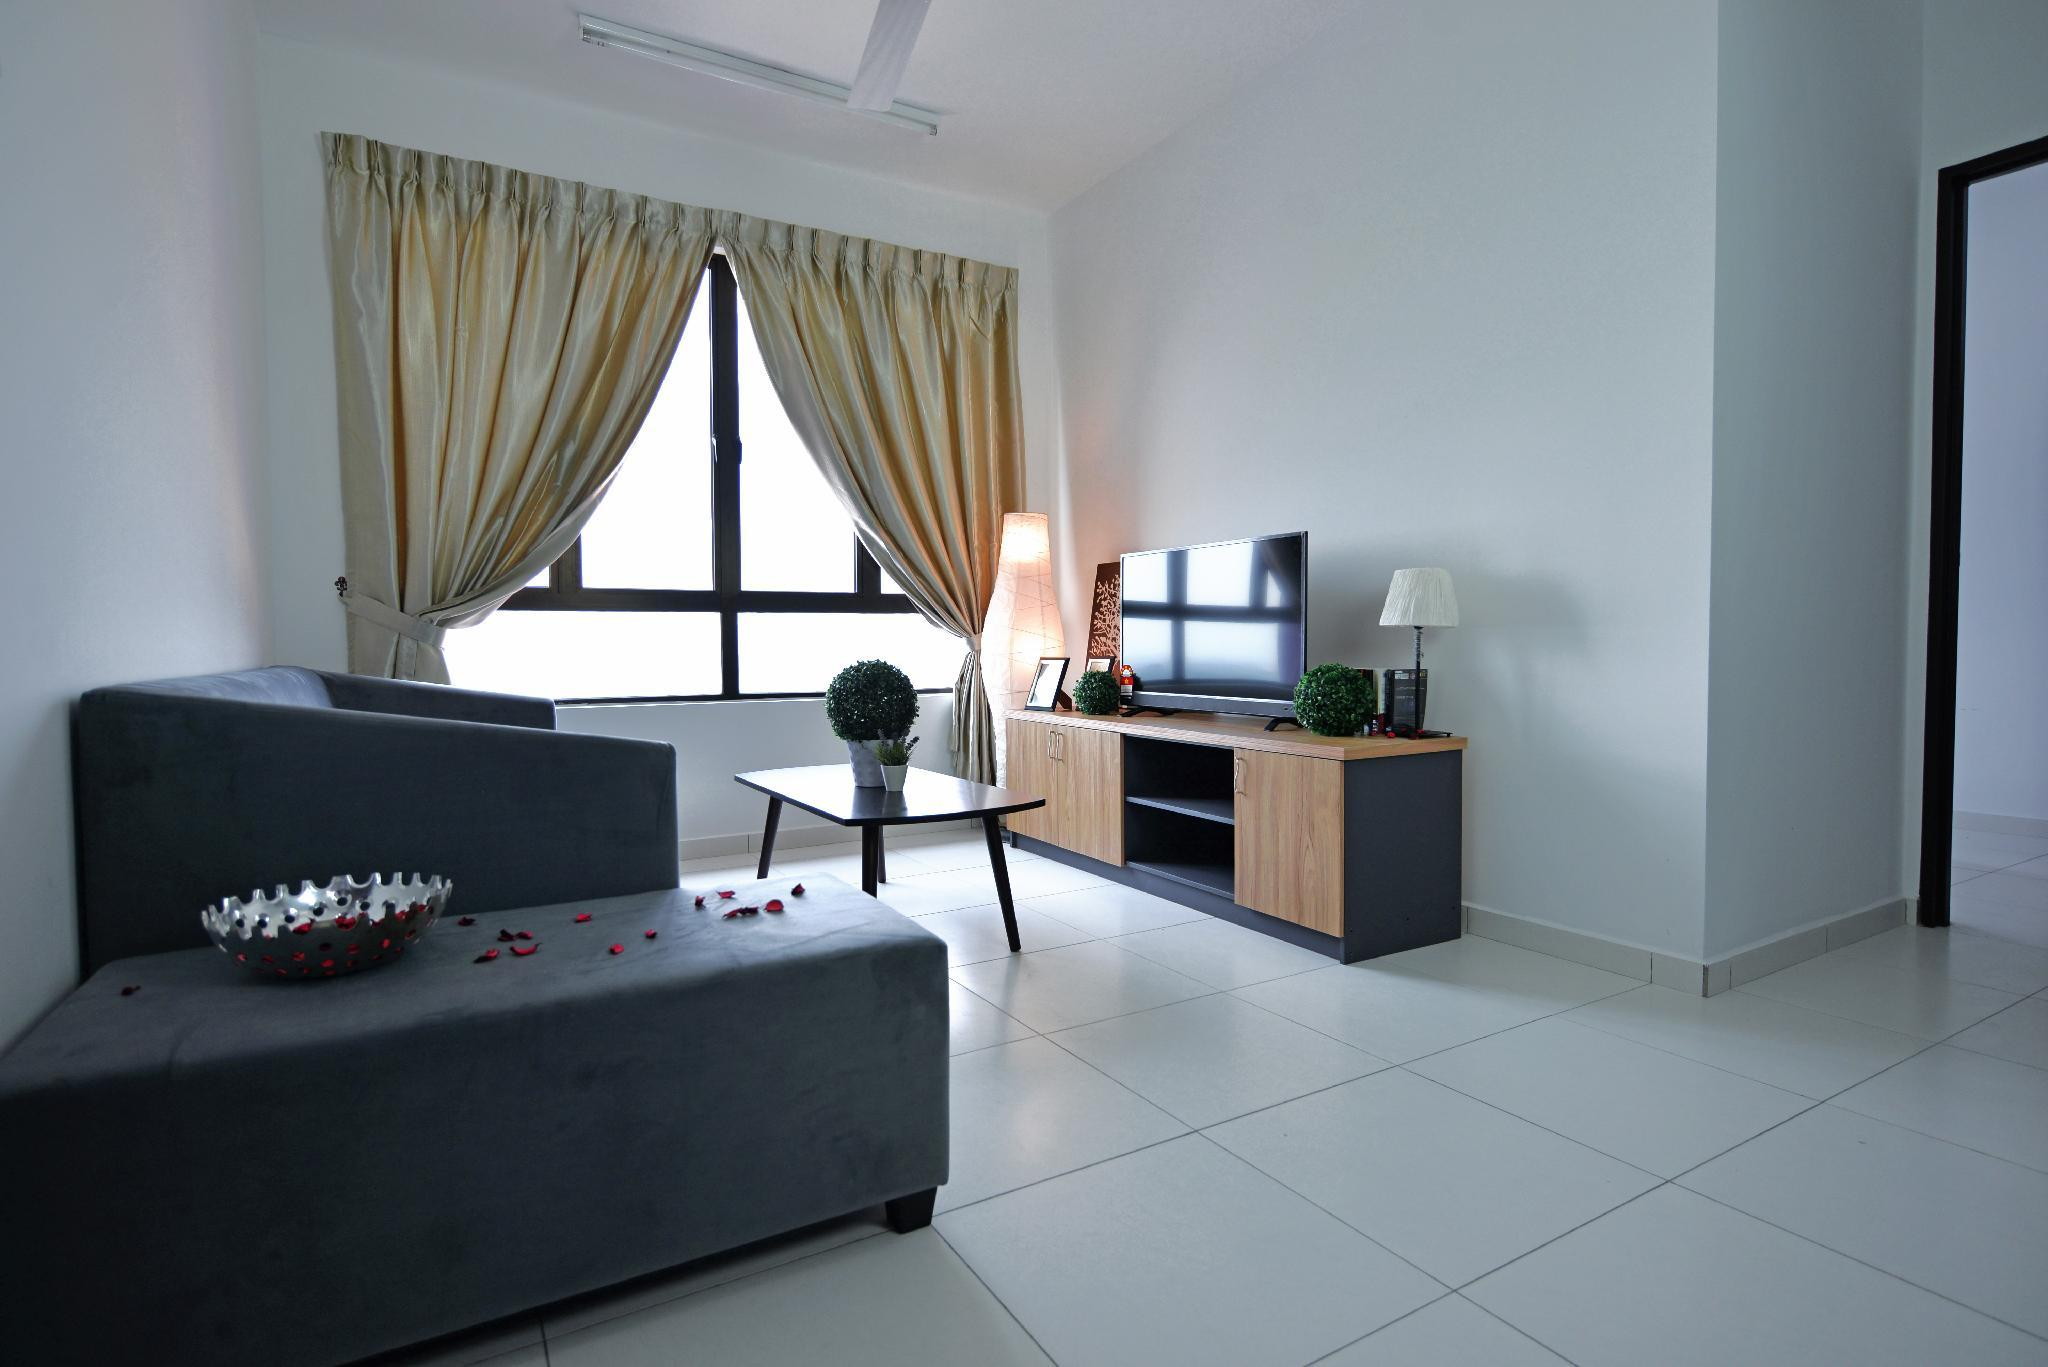 Homestay Ayer Keroh Malacca @ Cozy Stay 3BR DELUXE